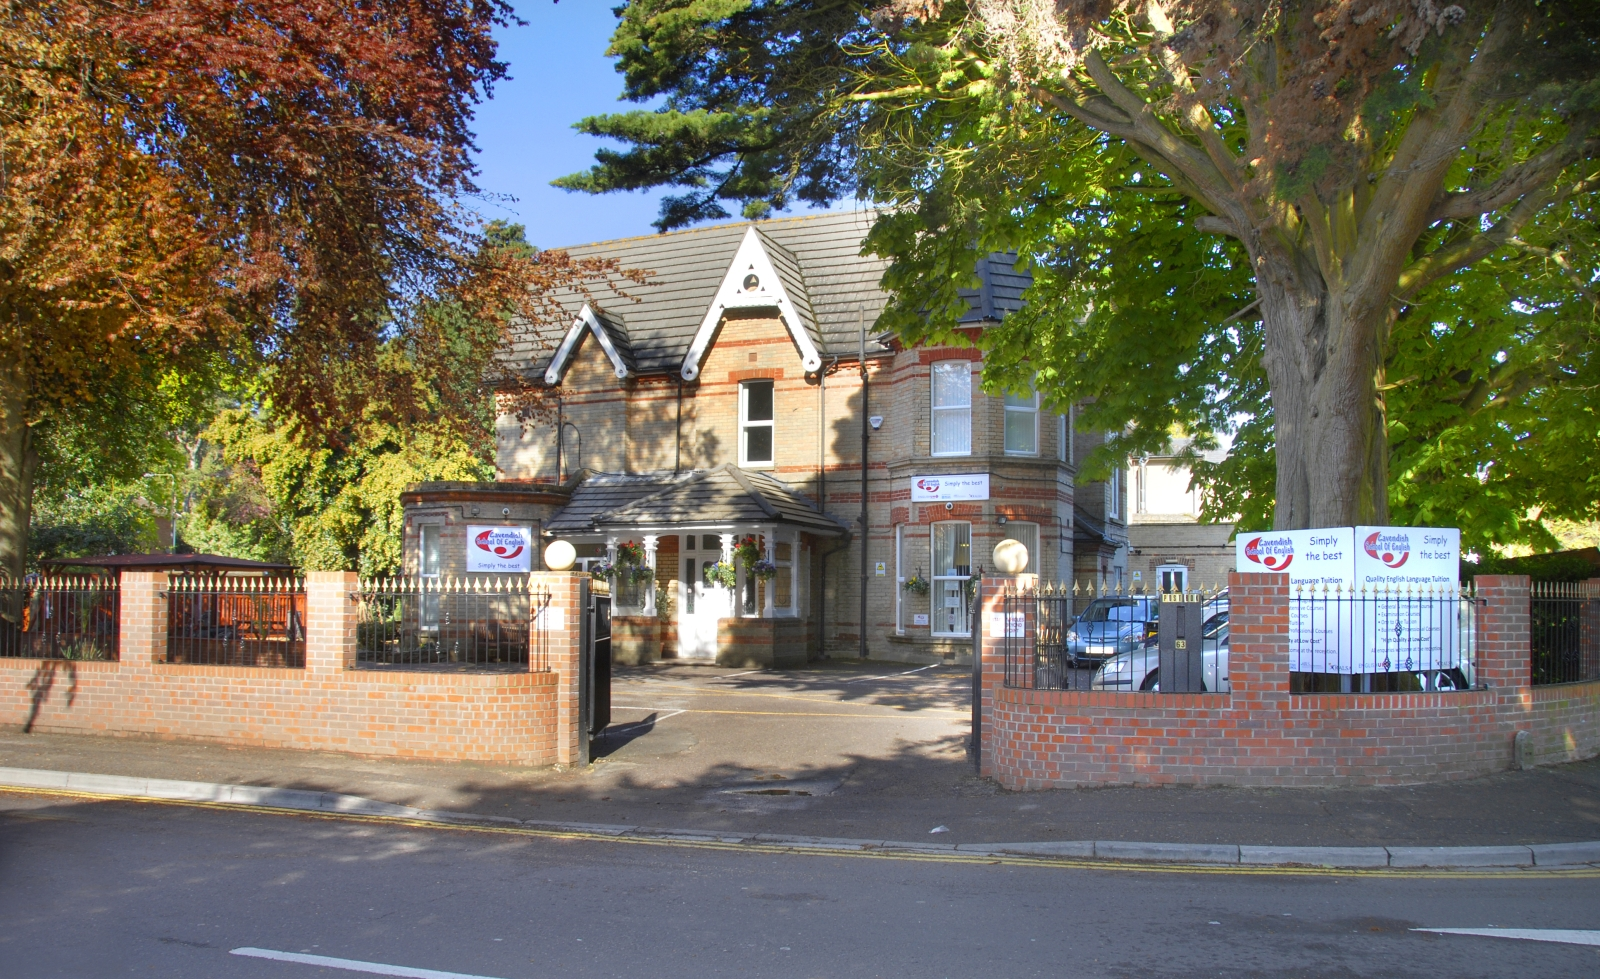 Colegio ingles en Bournemouth